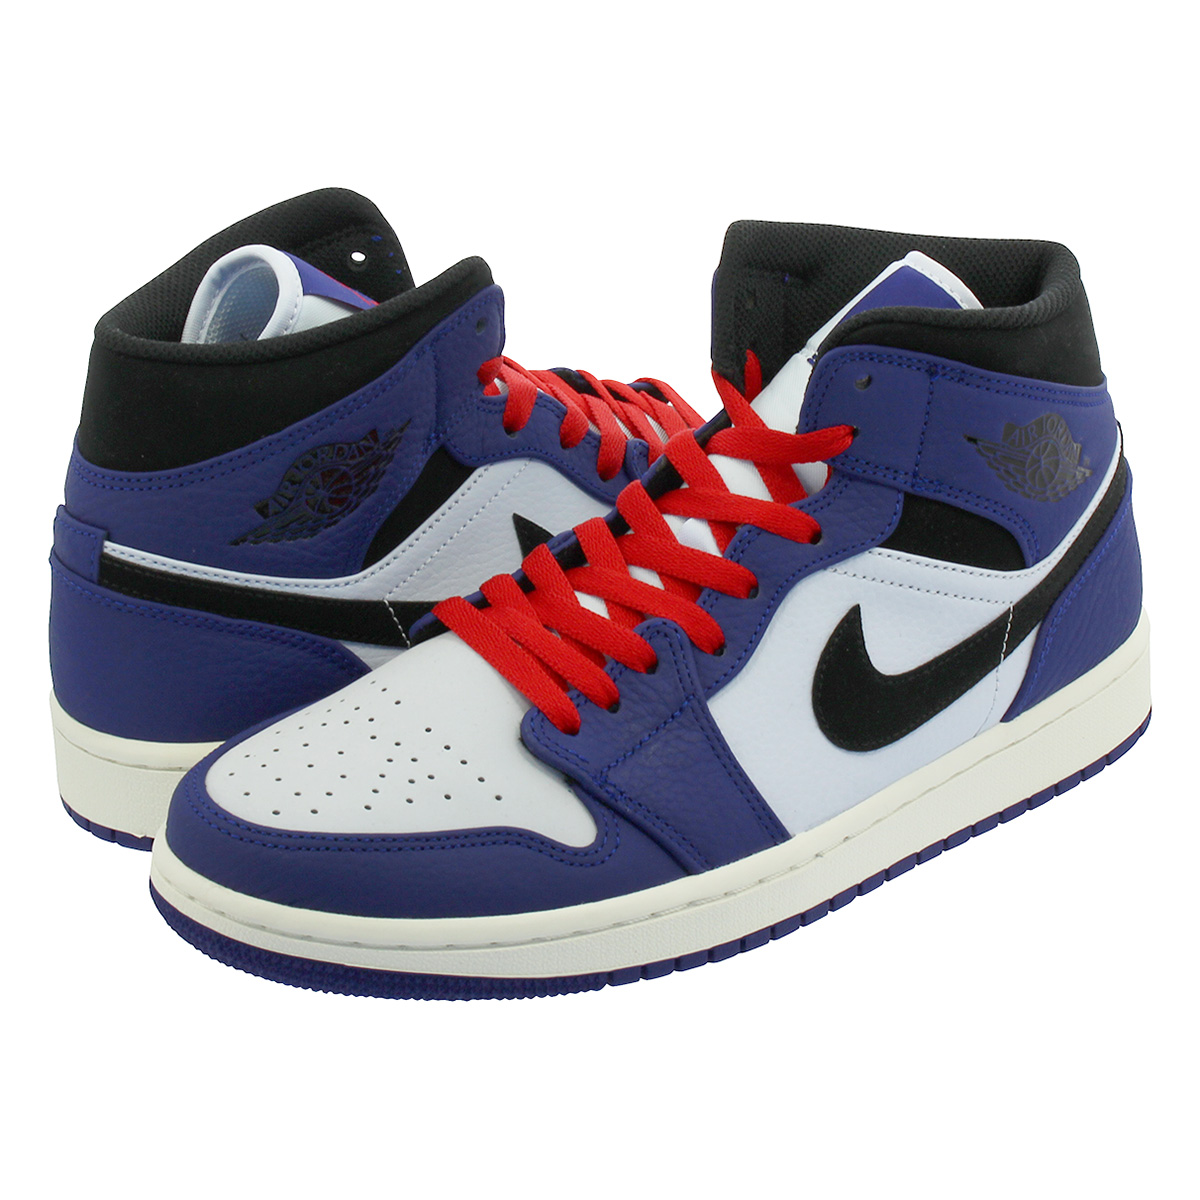 NIKE AIR JORDAN 1 MID SE Nike Air Jordan 1 mid SE DEEP ROYAL BLUE BLACK  852 db44fff4c